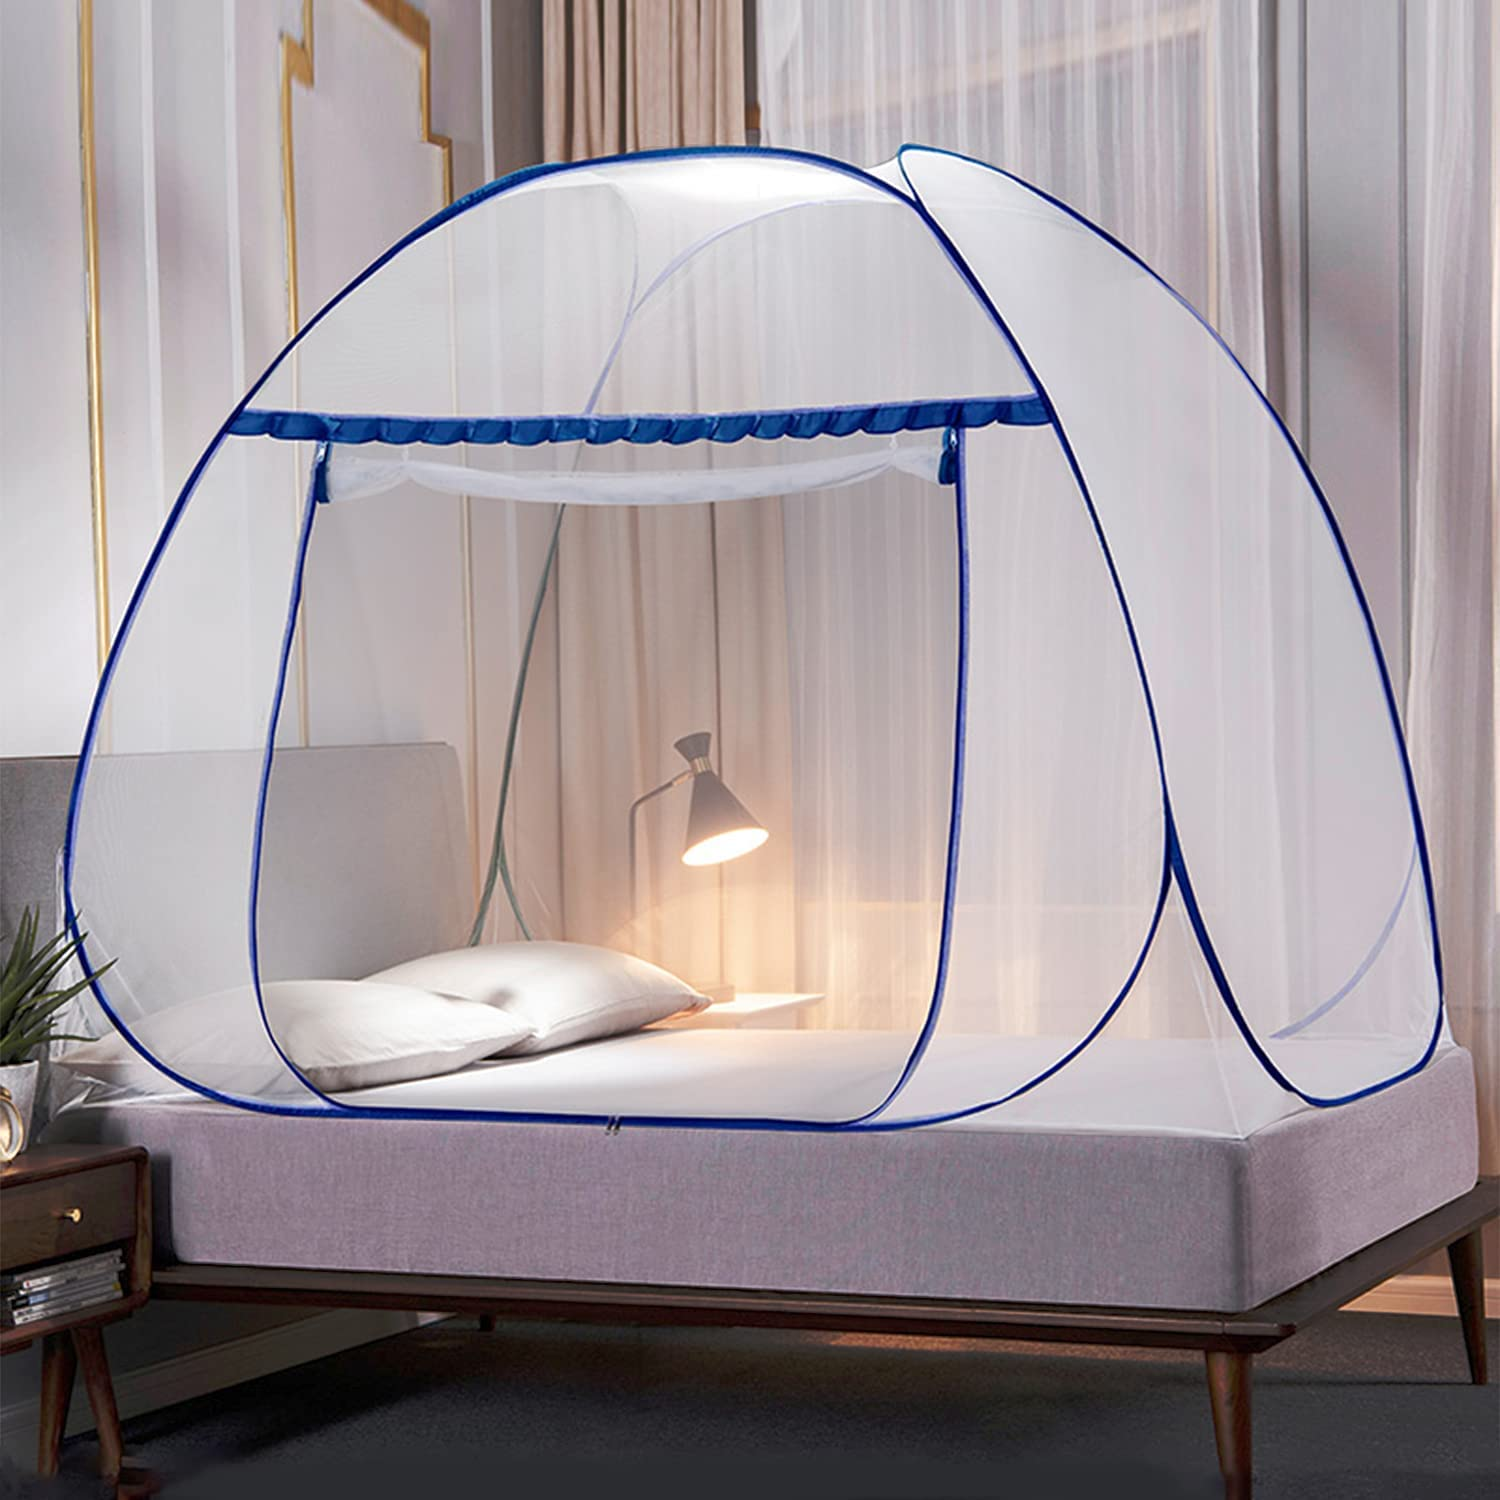 Ivellow Pop Up Mosquito Net Tent Folding Mosquito Tent with Bottom for Baby Adults Pop Up Mesh Tent for Bed Net Canopy Bedroom Home Outdoor Camping Trip